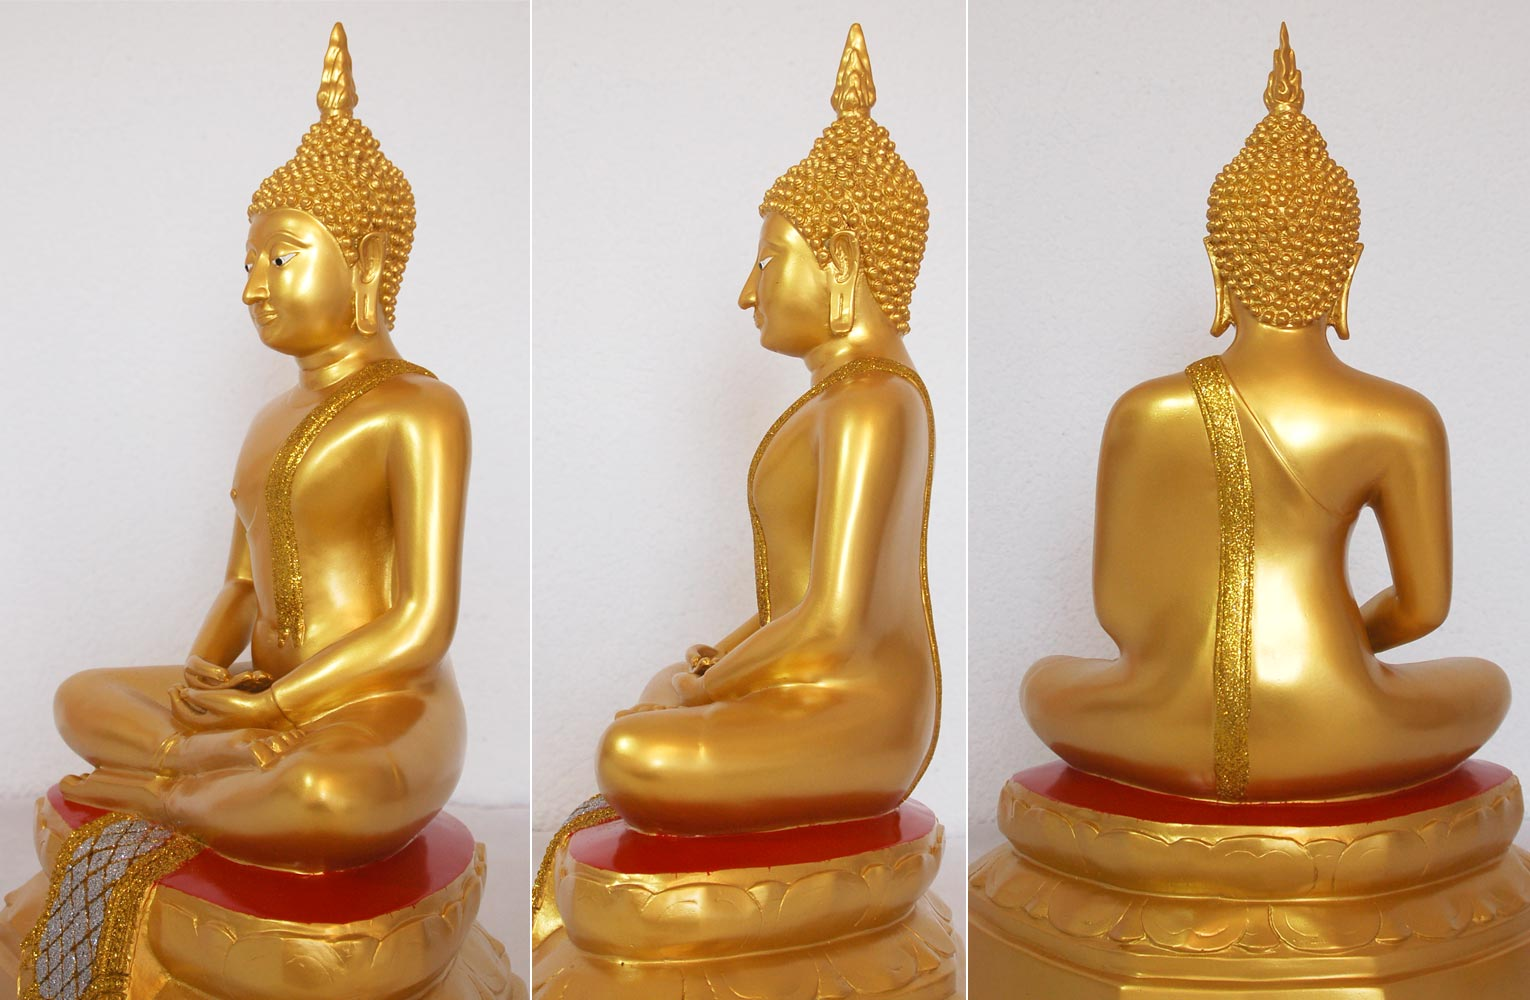 buddha tempelbuddha gold bis 114 cm statue figur meditation tempelw chter kaufen bei. Black Bedroom Furniture Sets. Home Design Ideas